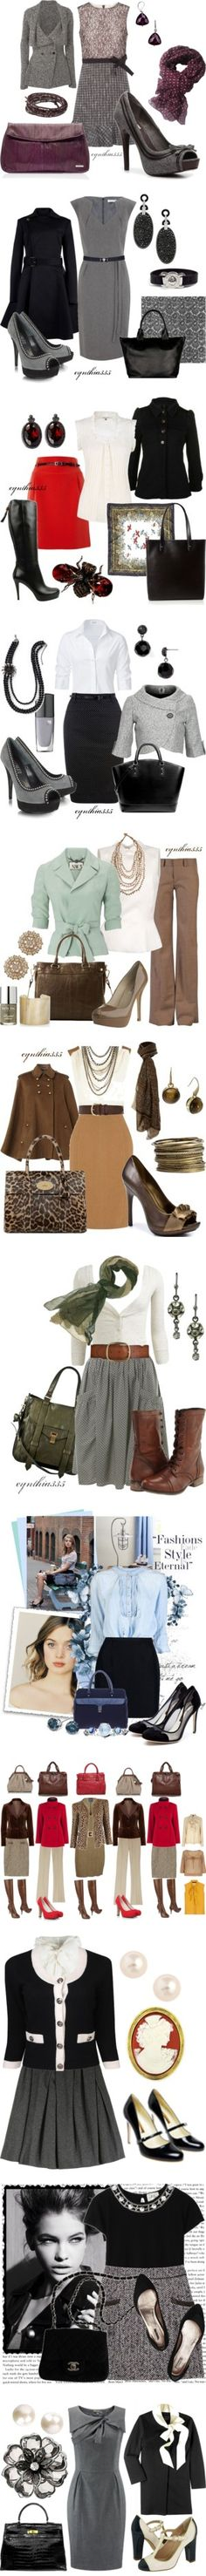 """""""Outfits para ir a trabajar"""" by guisella-infantes on Polyvore"""